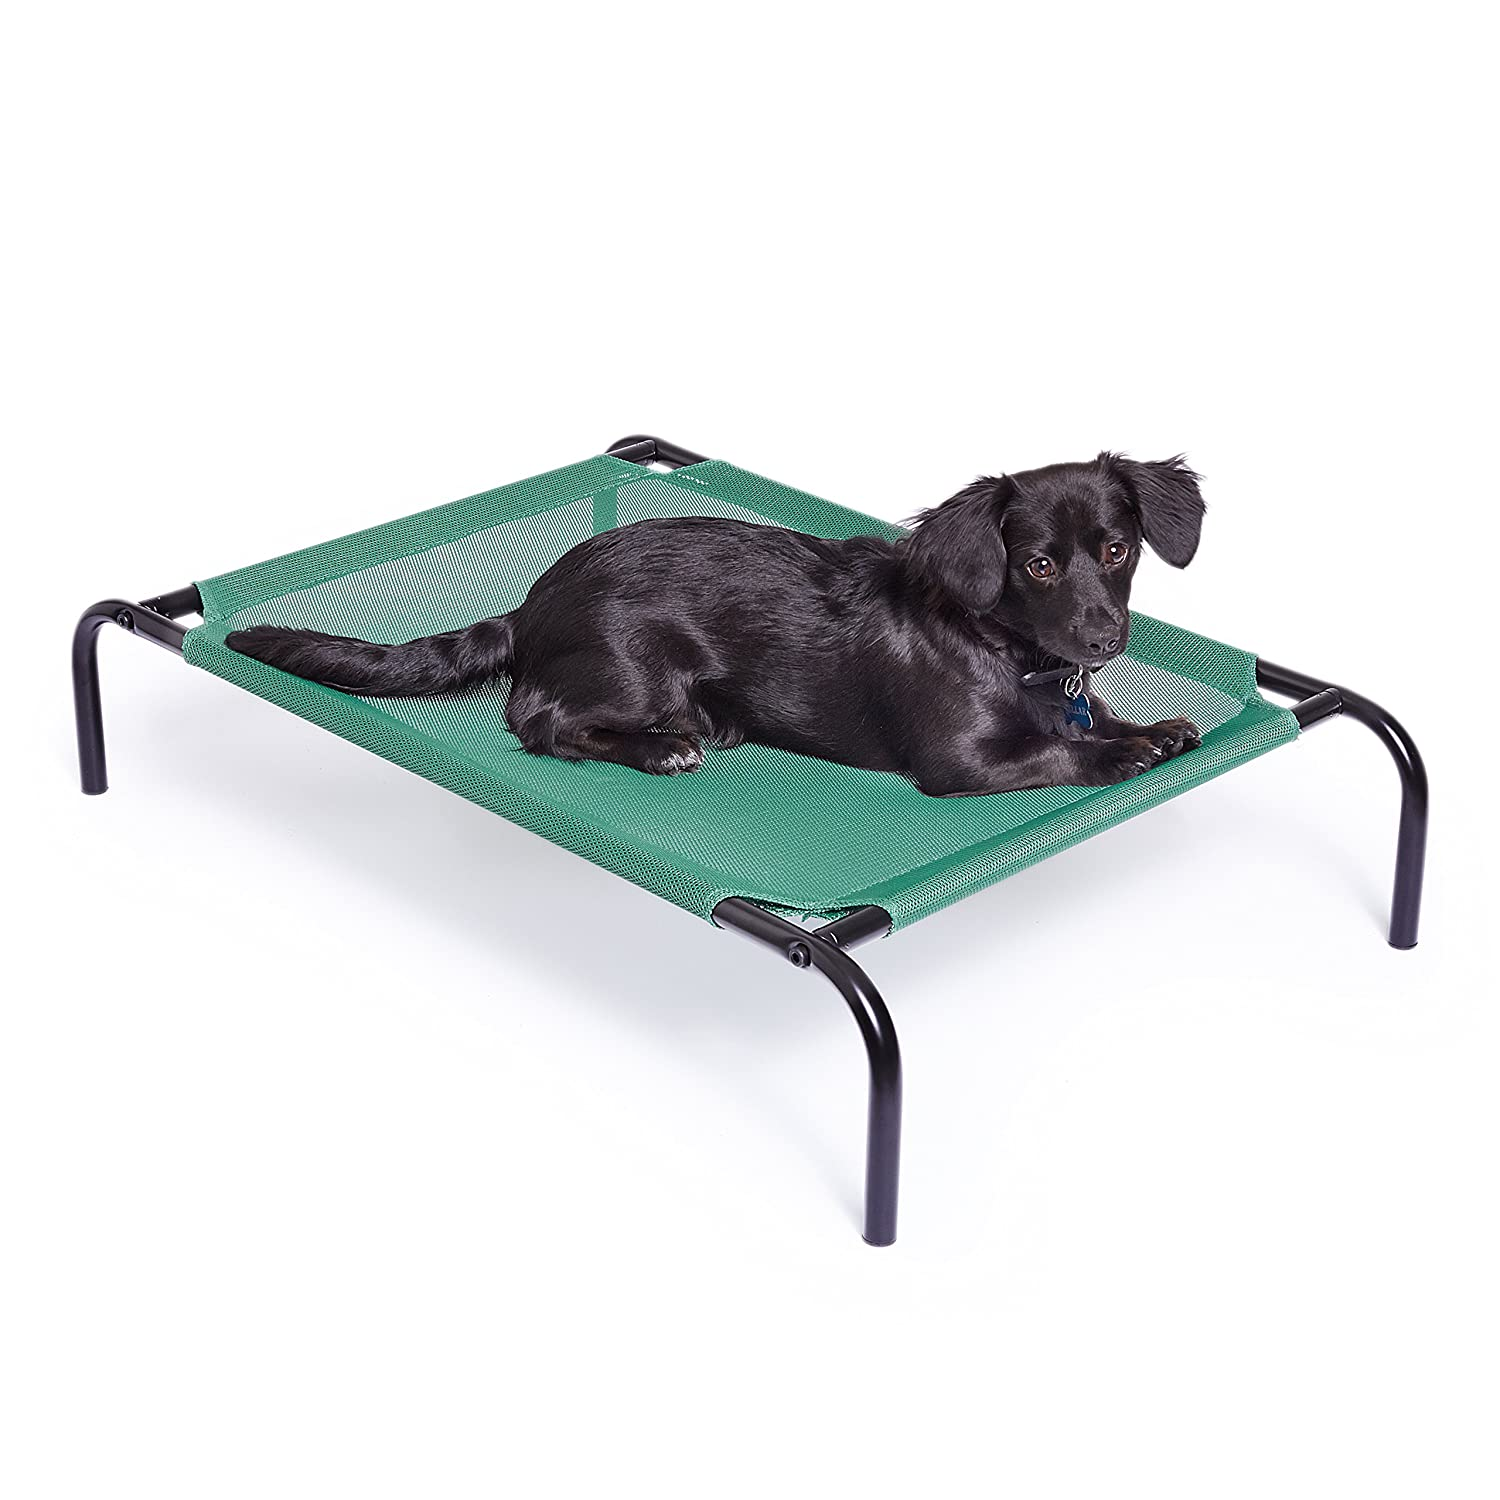 AmazonBasics Elevated Cooling Pet Cot